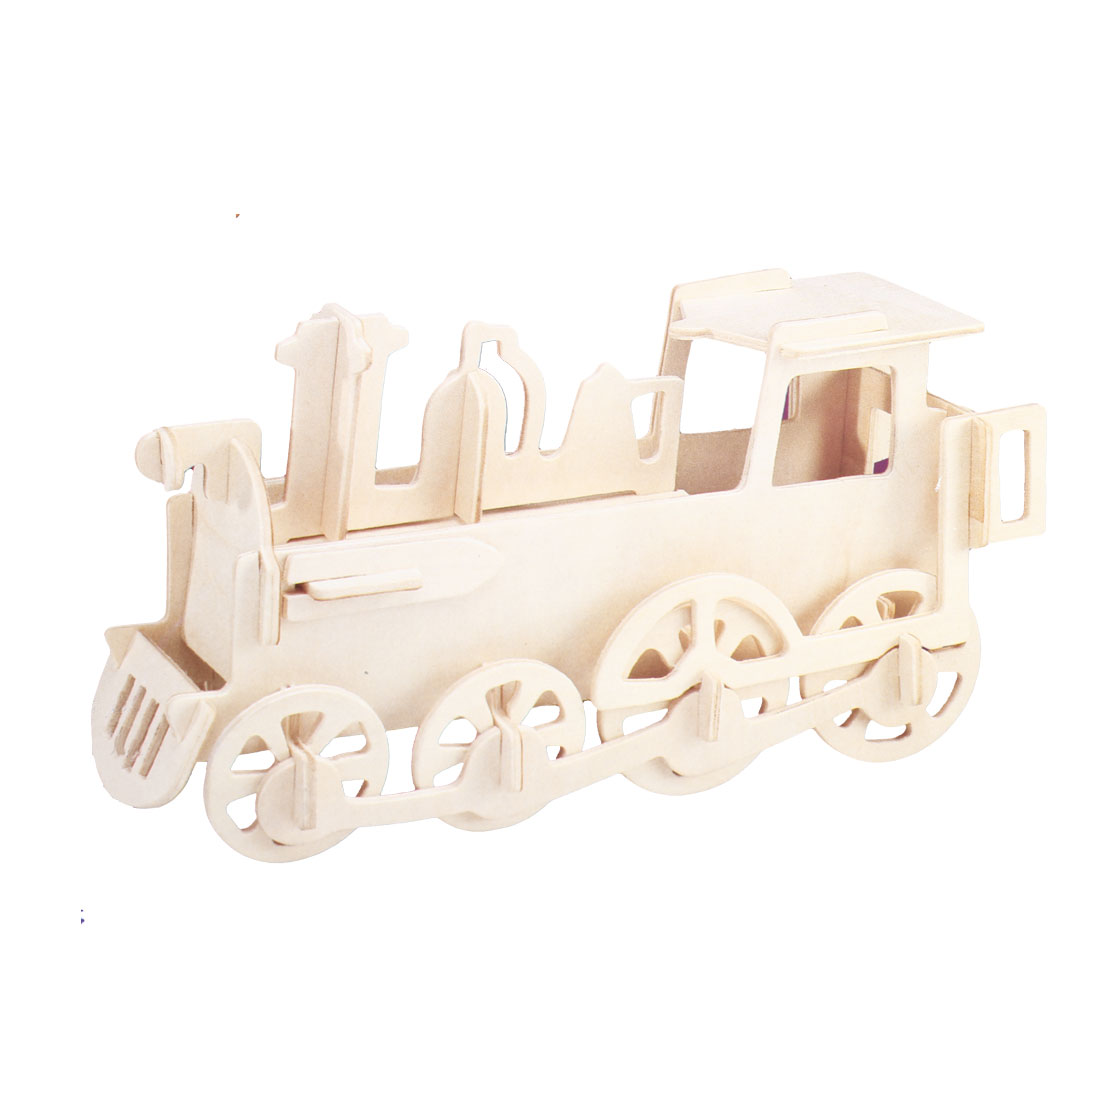 3D Locomotive Model Wood DIY Assembly Puzzled Toy Woodcraft Construction Kit